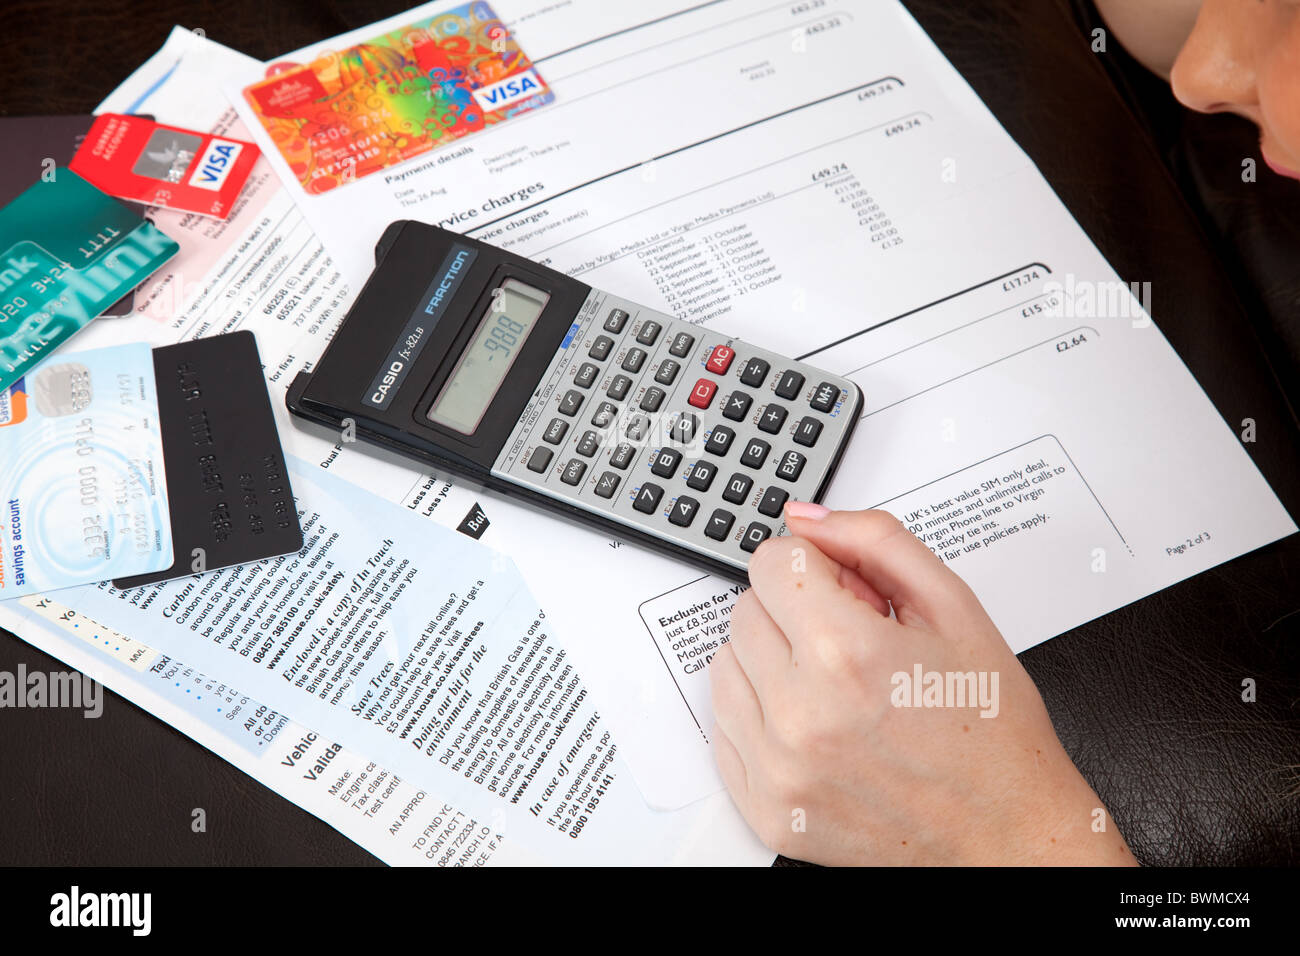 Photograph showing being in debt. - Stock Image